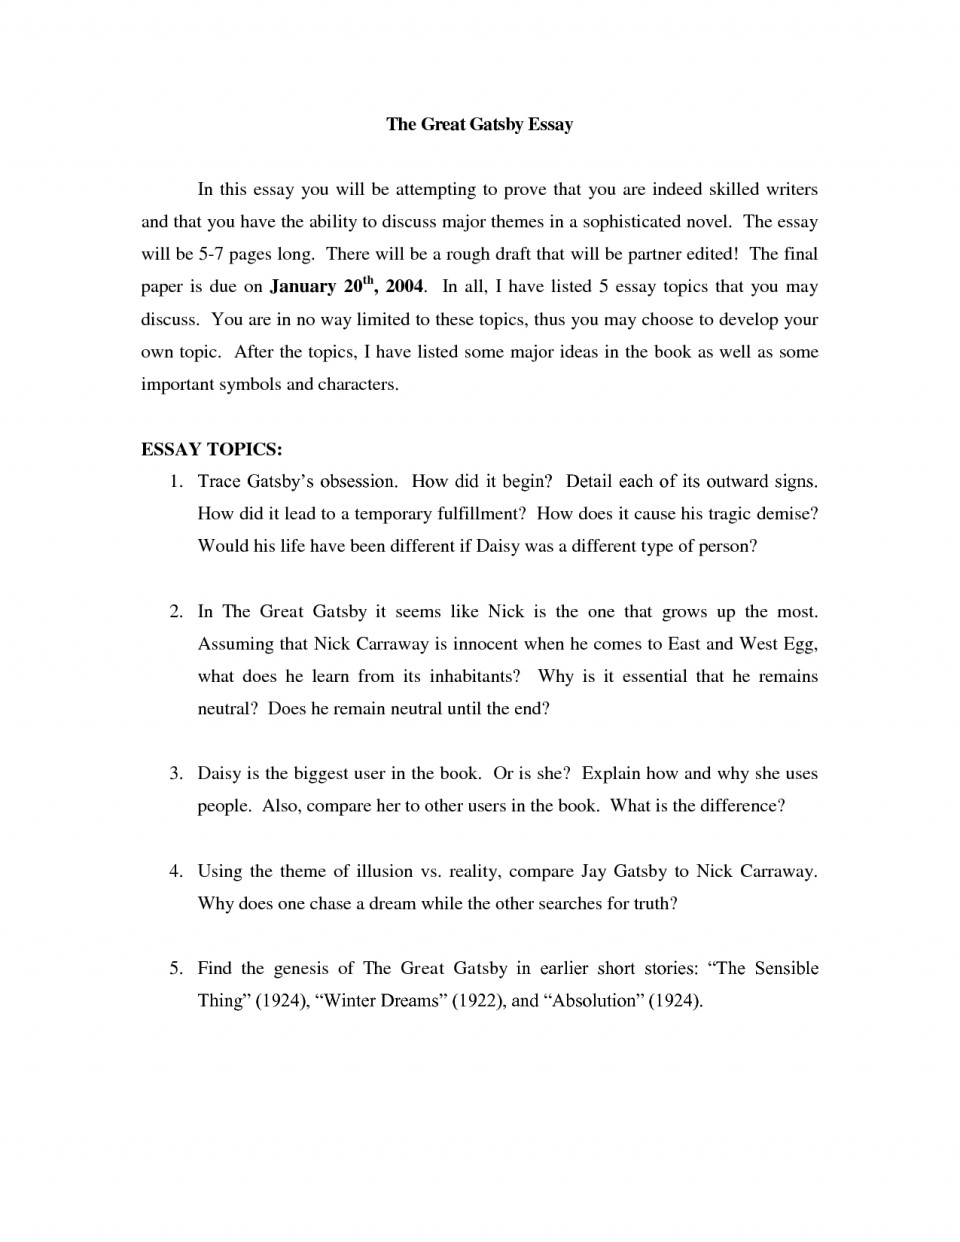 003 Essays On Cyber Bullying Best English Essay I Need An Trees Thesis Statement For The Great Gatsby Template 4ni Argumentative Topics Persuasive About Cyberbullying Unique Outline 960